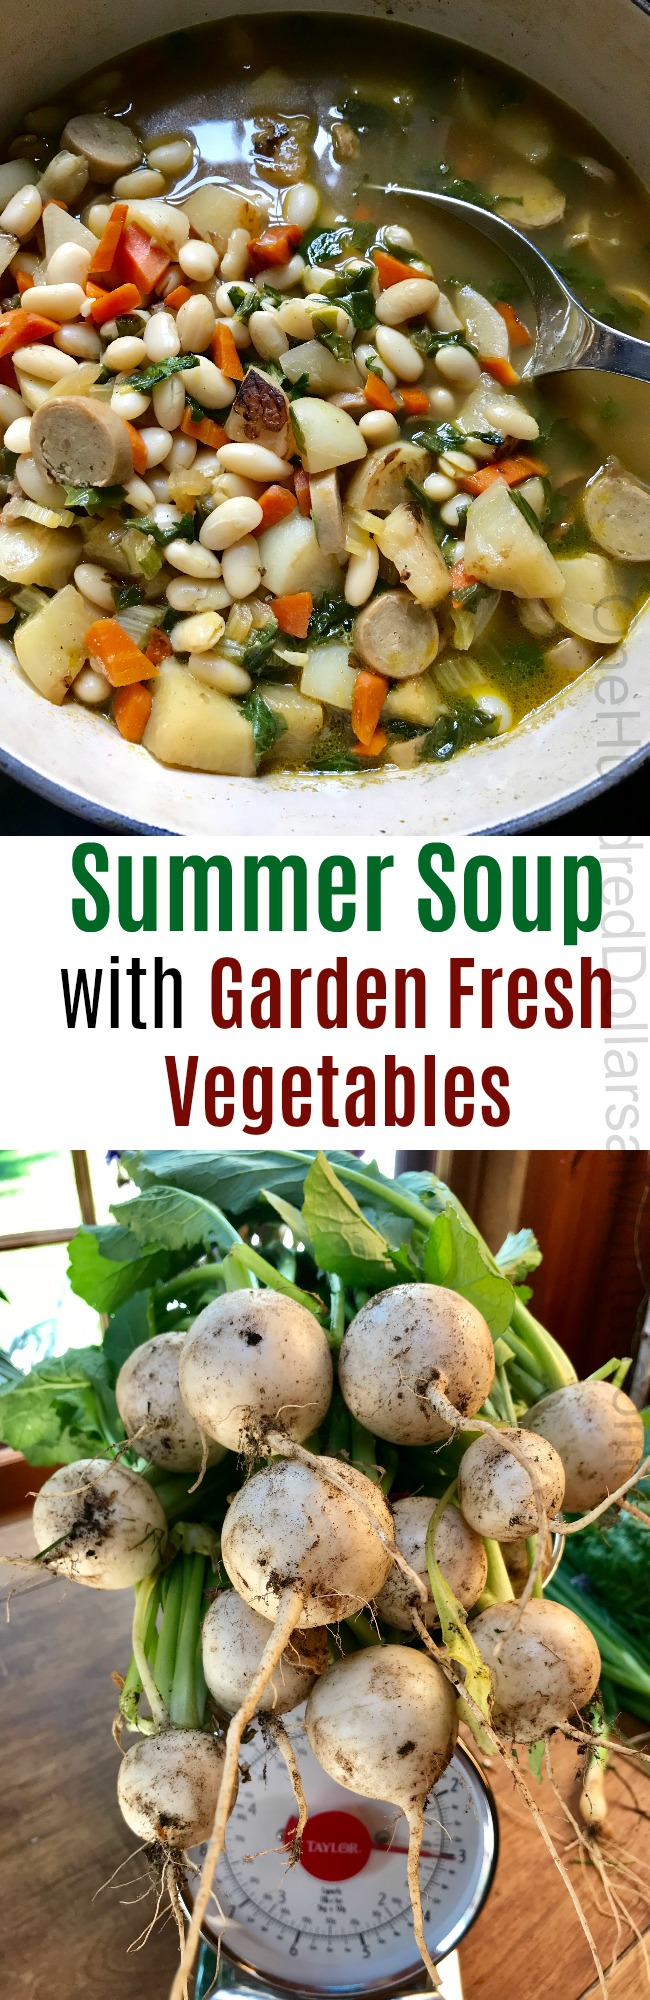 Summer Soup with Garden Fresh Turnips, Swiss Chard and Carrots